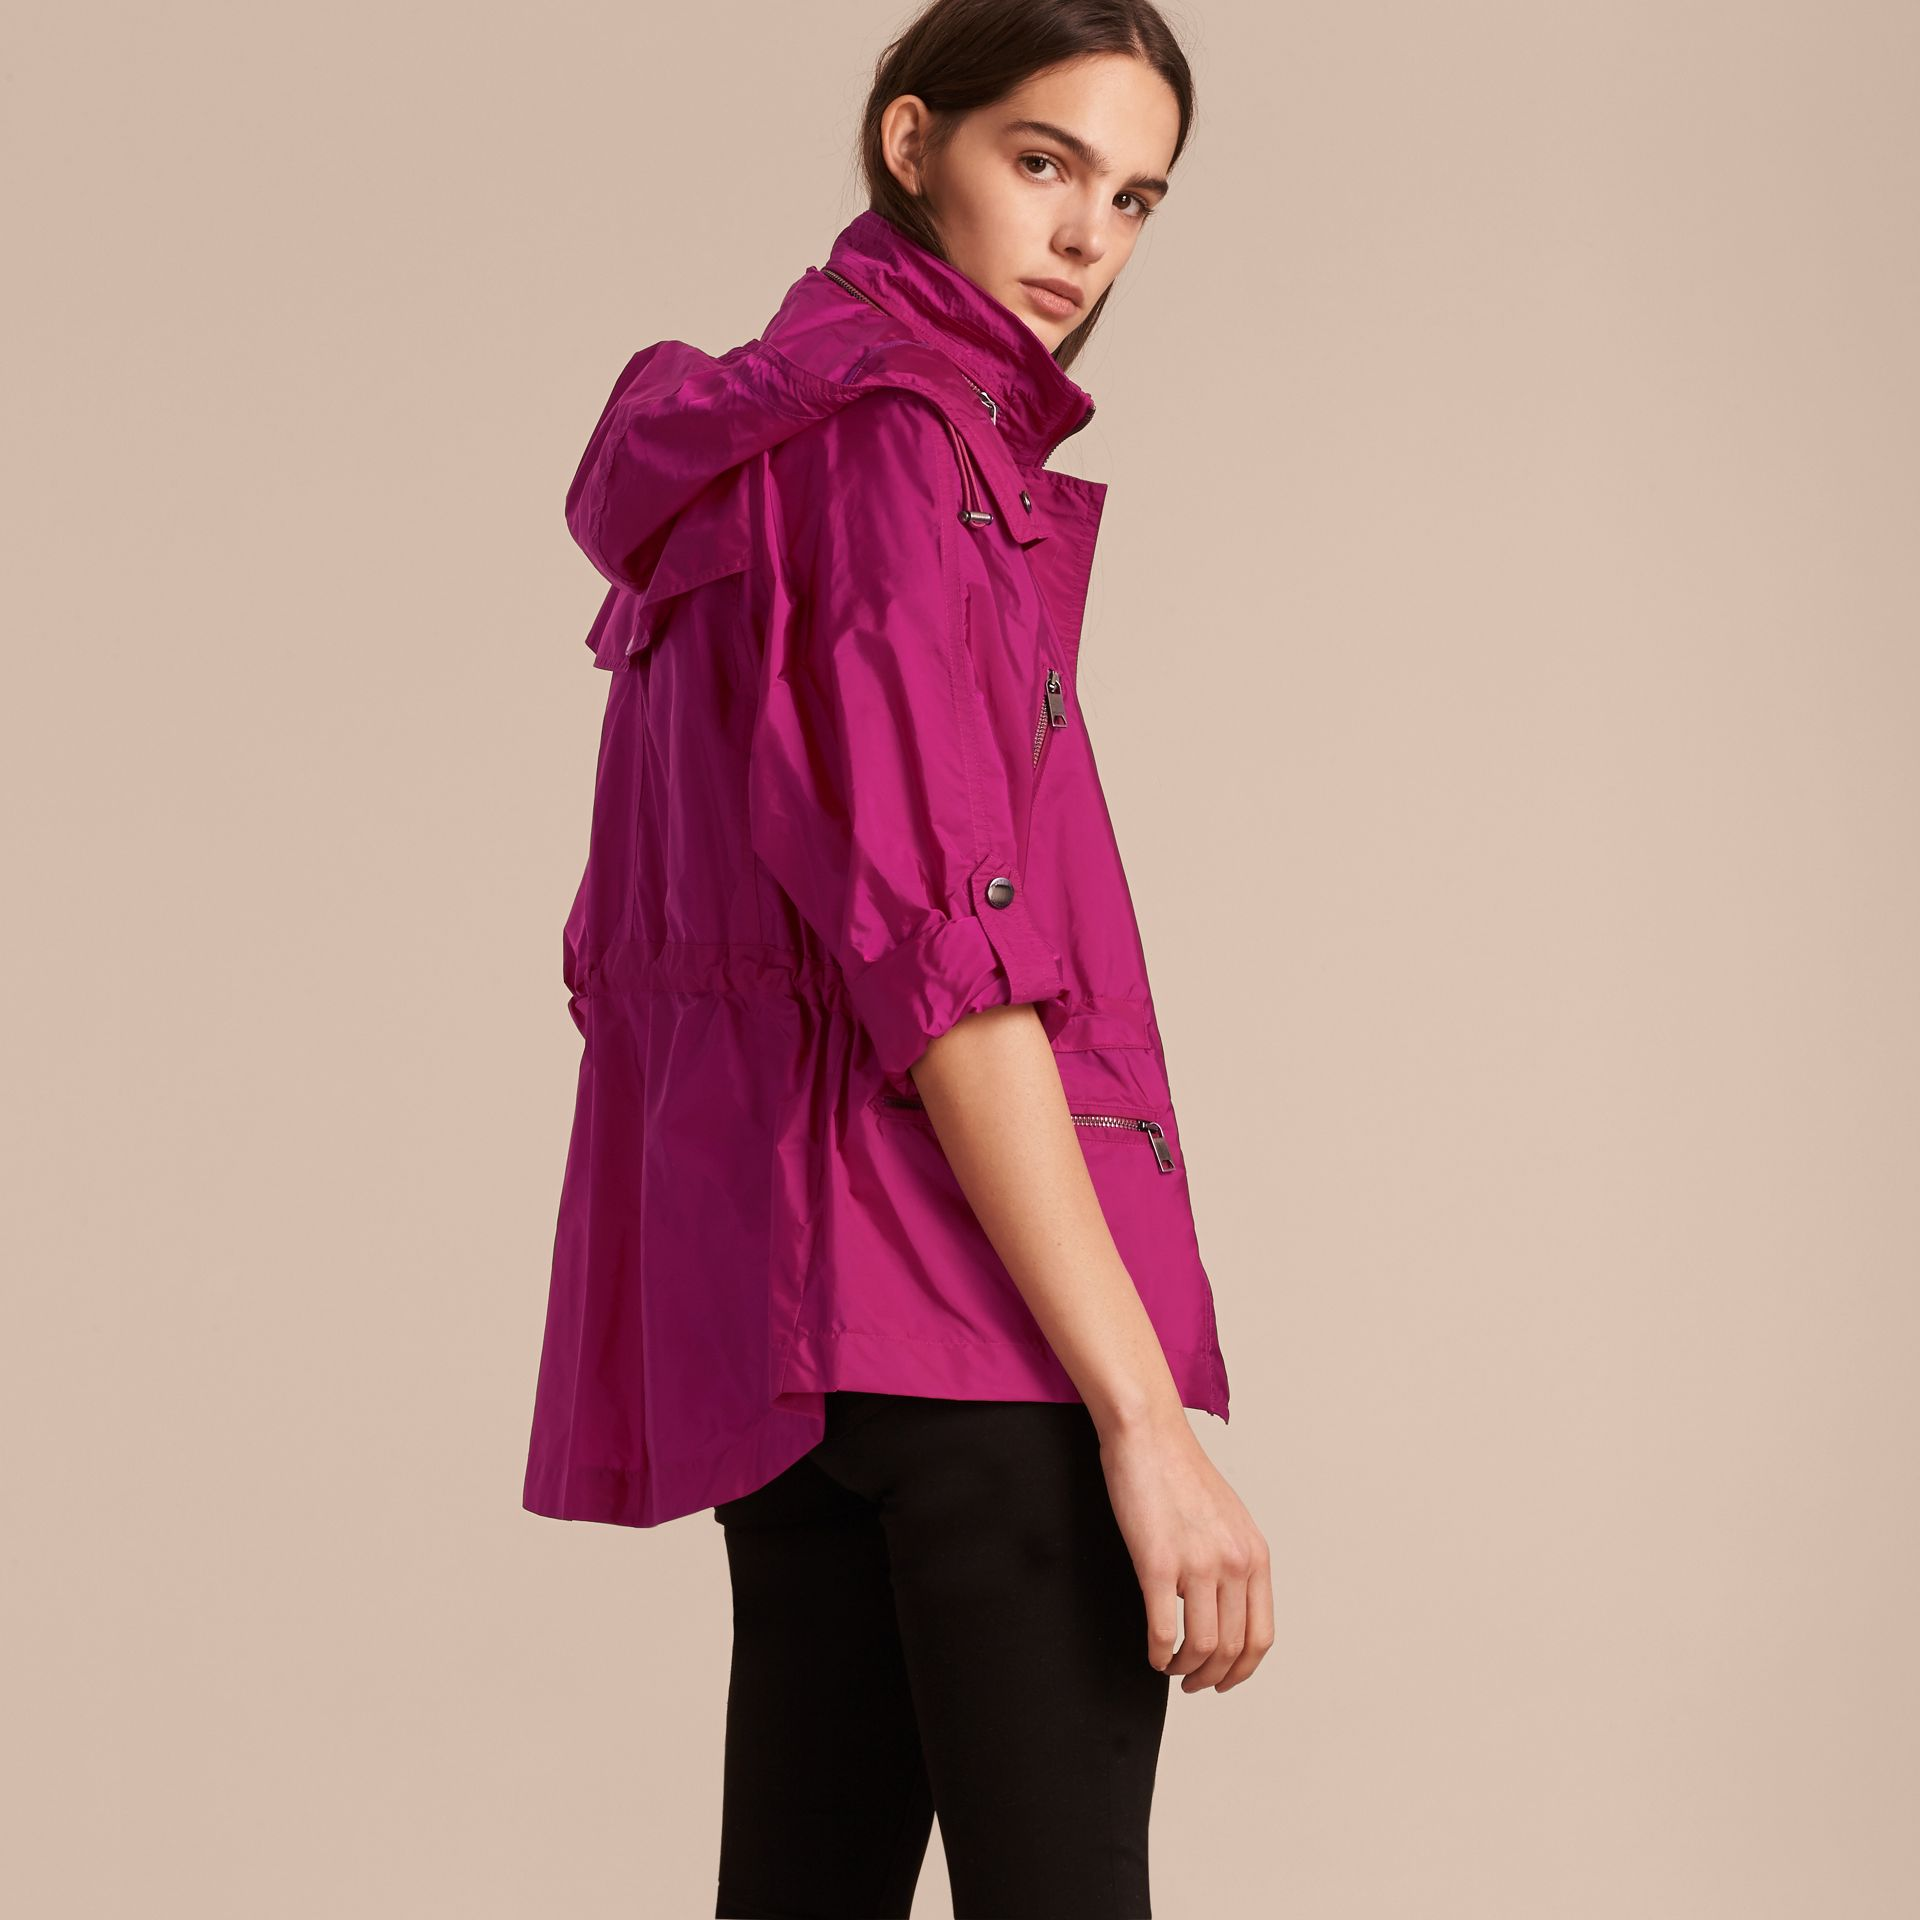 Fuchsia Showerproof Parka Jacket with Packaway Hood Fuchsia - gallery image 3